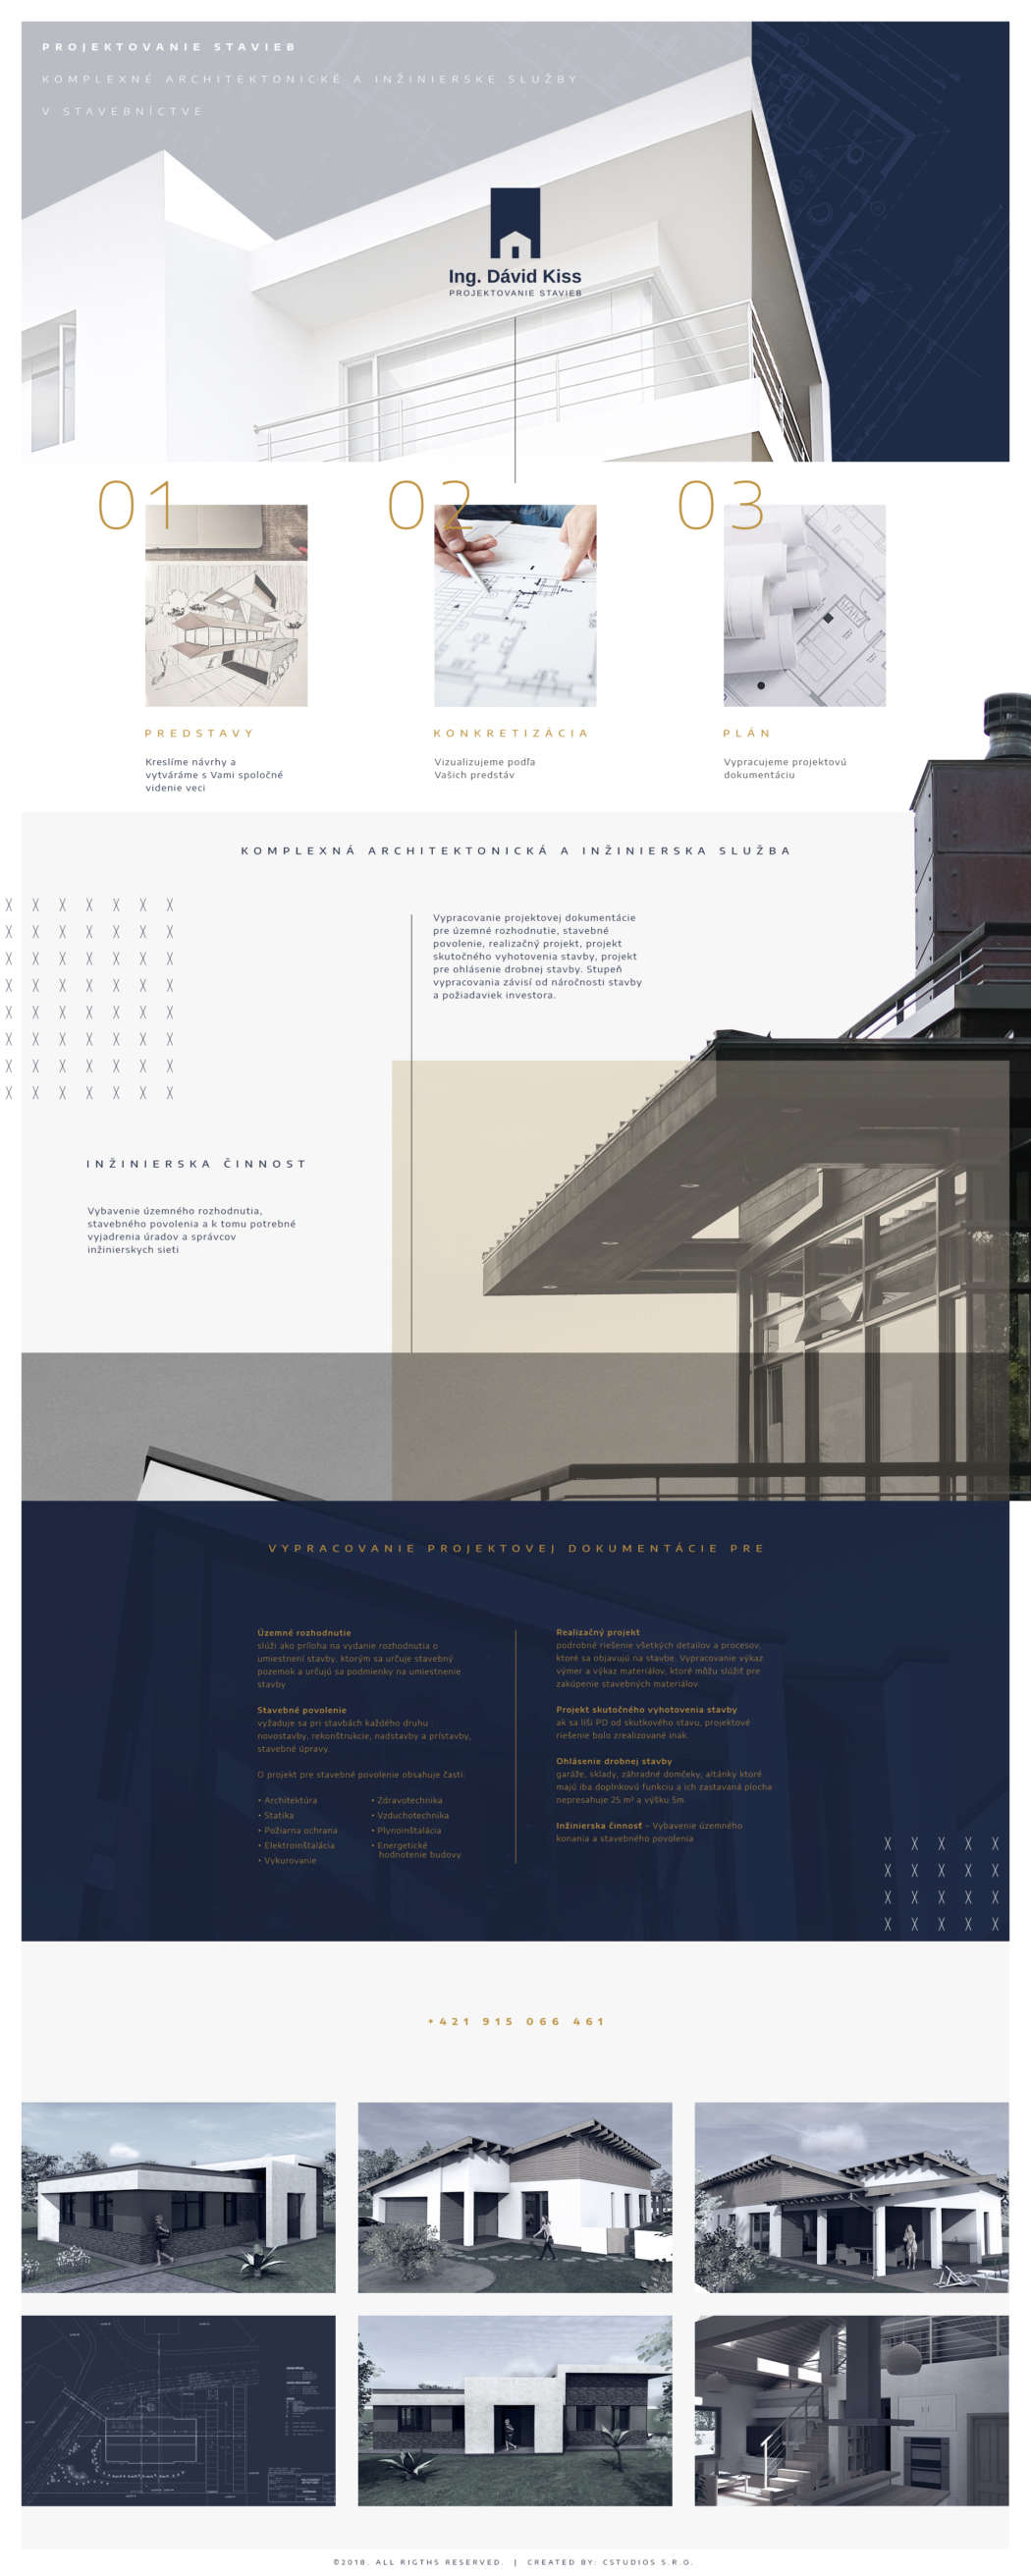 David Kiss architect - webdesign | Grafikerik